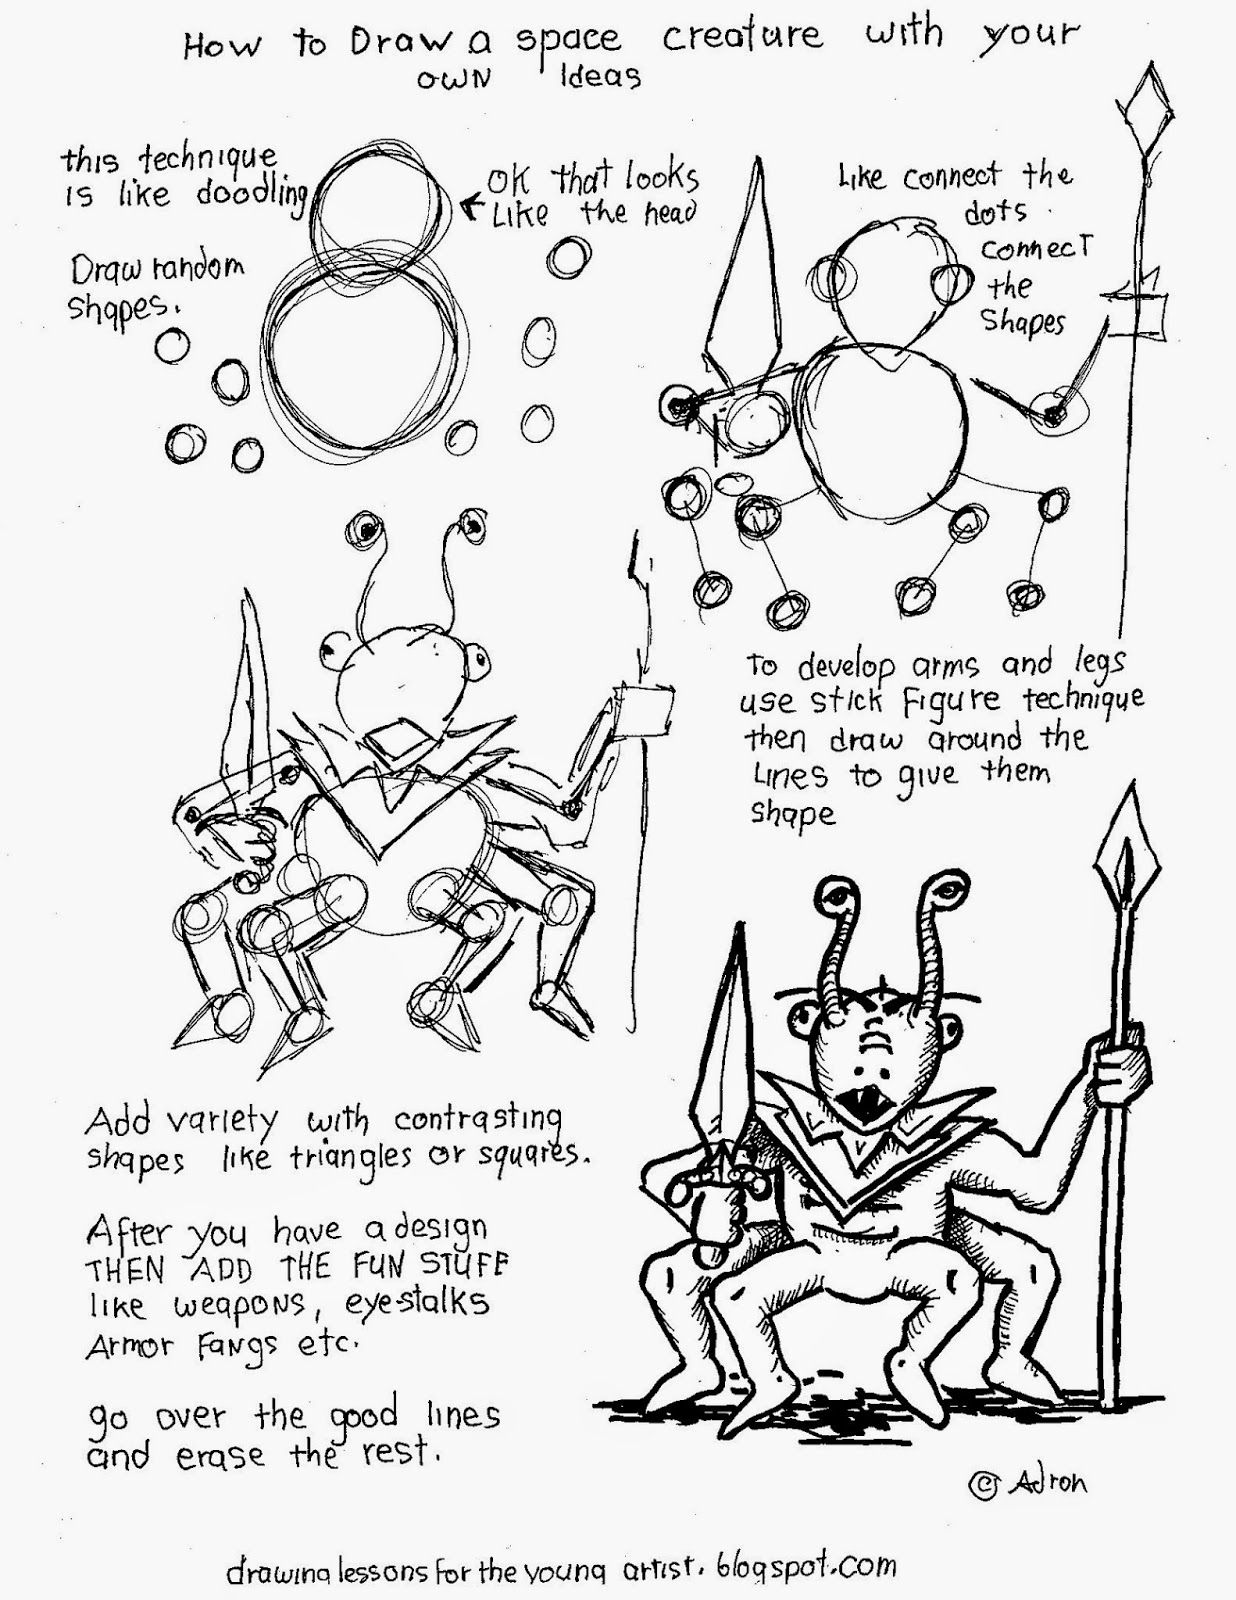 How To Draw A Space Creature With Your Own Ideas